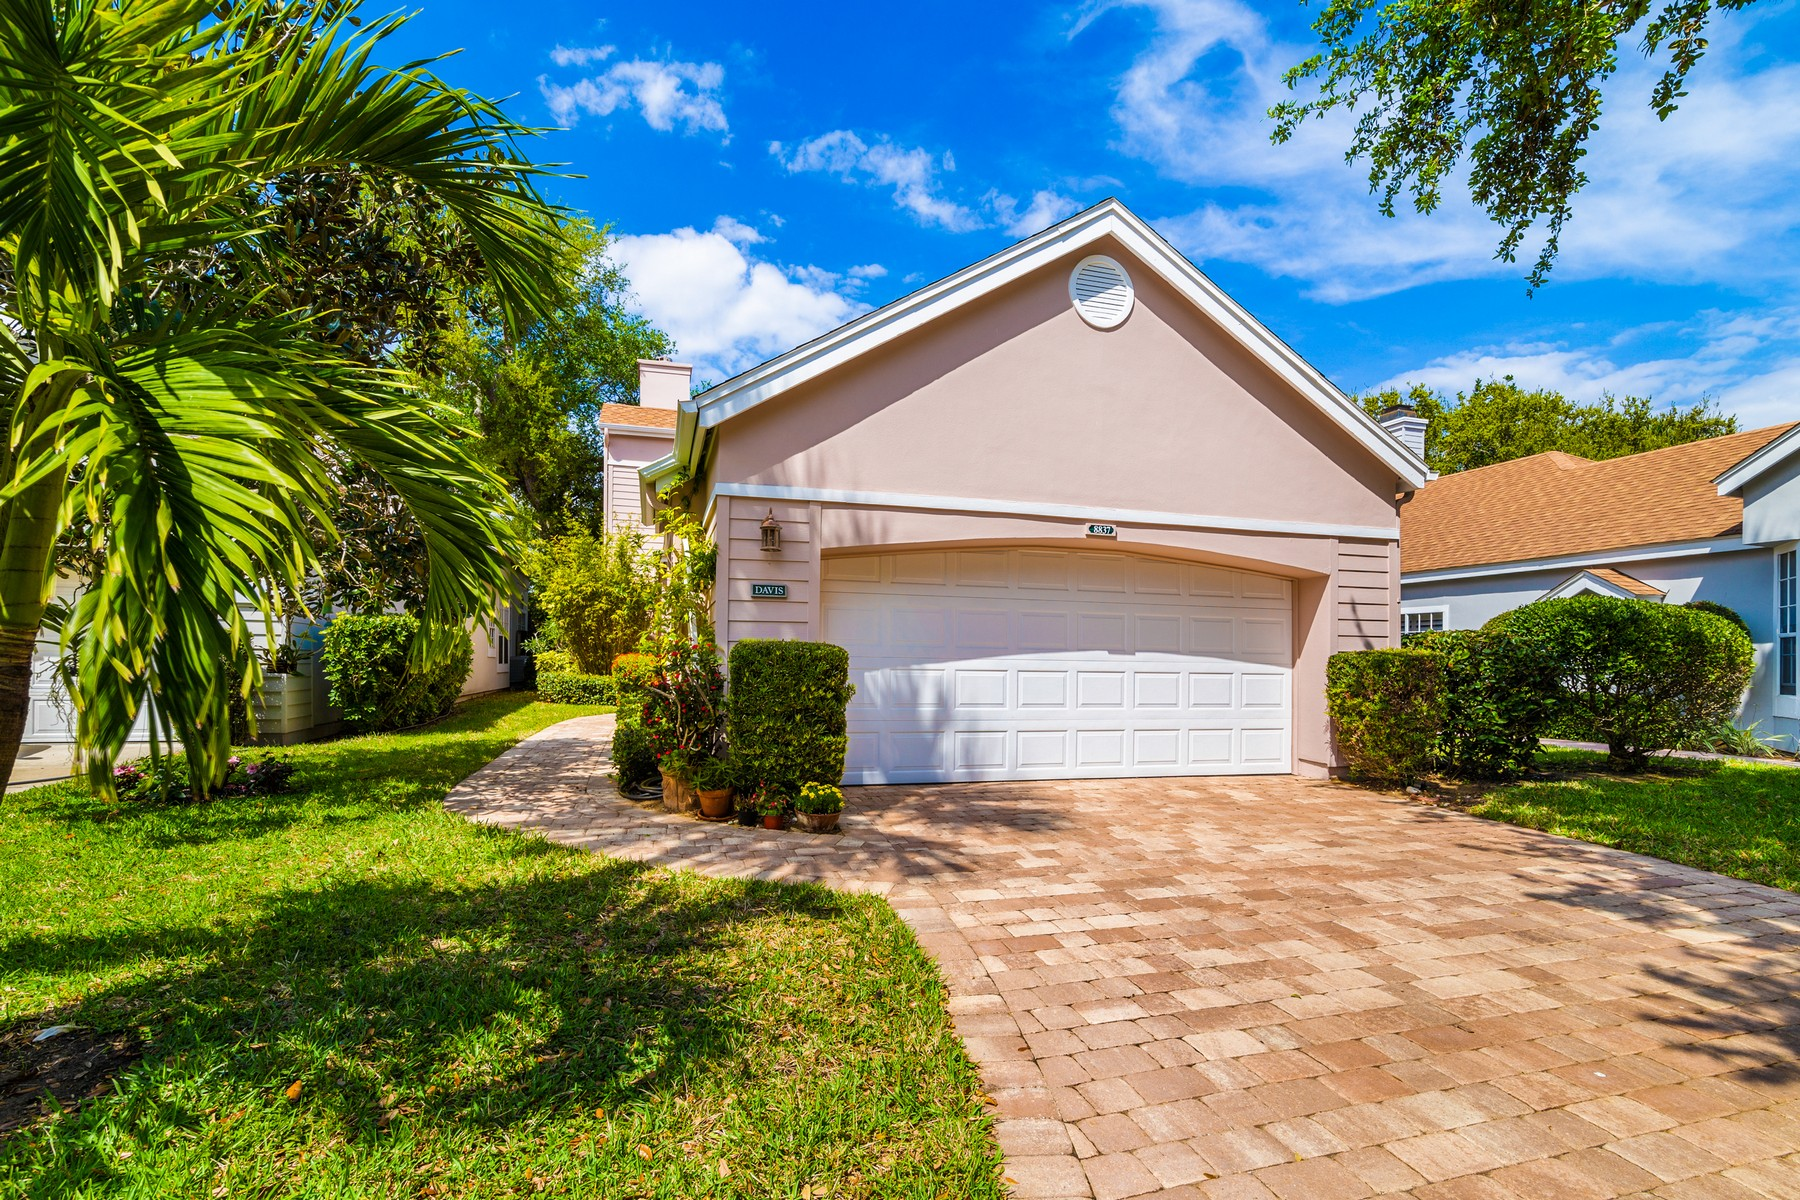 Property 為 出售 在 SEA OAKS RIVER HOME 8837 Lakeside Circle Vero Beach, 佛羅里達州 32963 美國